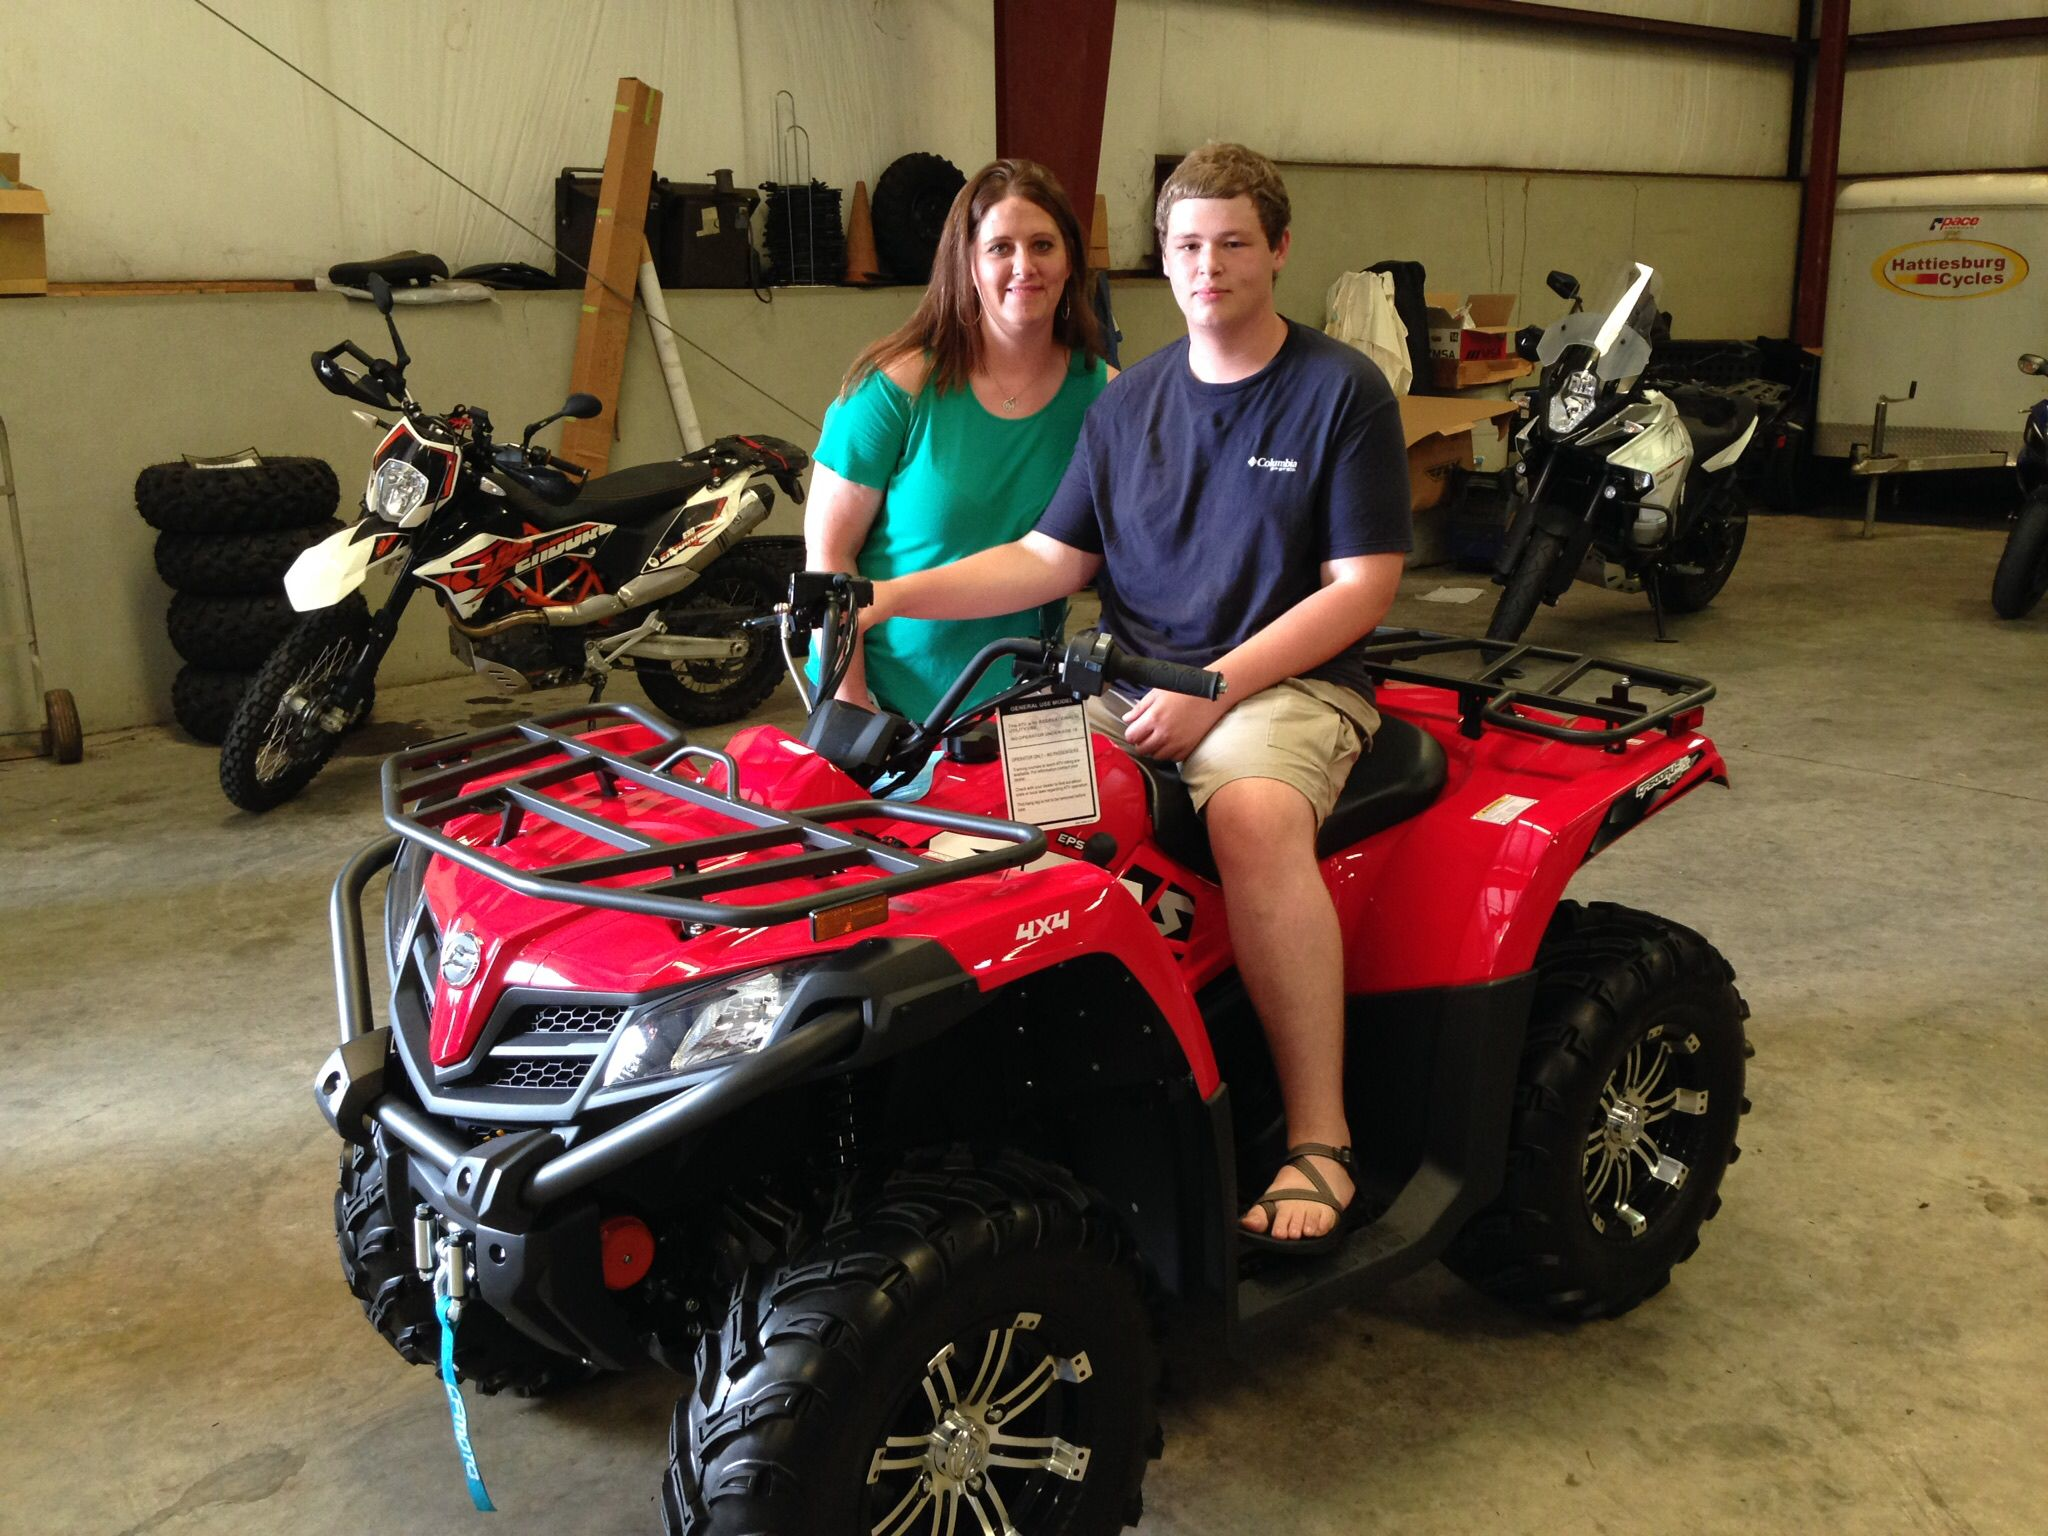 Congratulations to Jennifer and Patrick Smith from Brandon